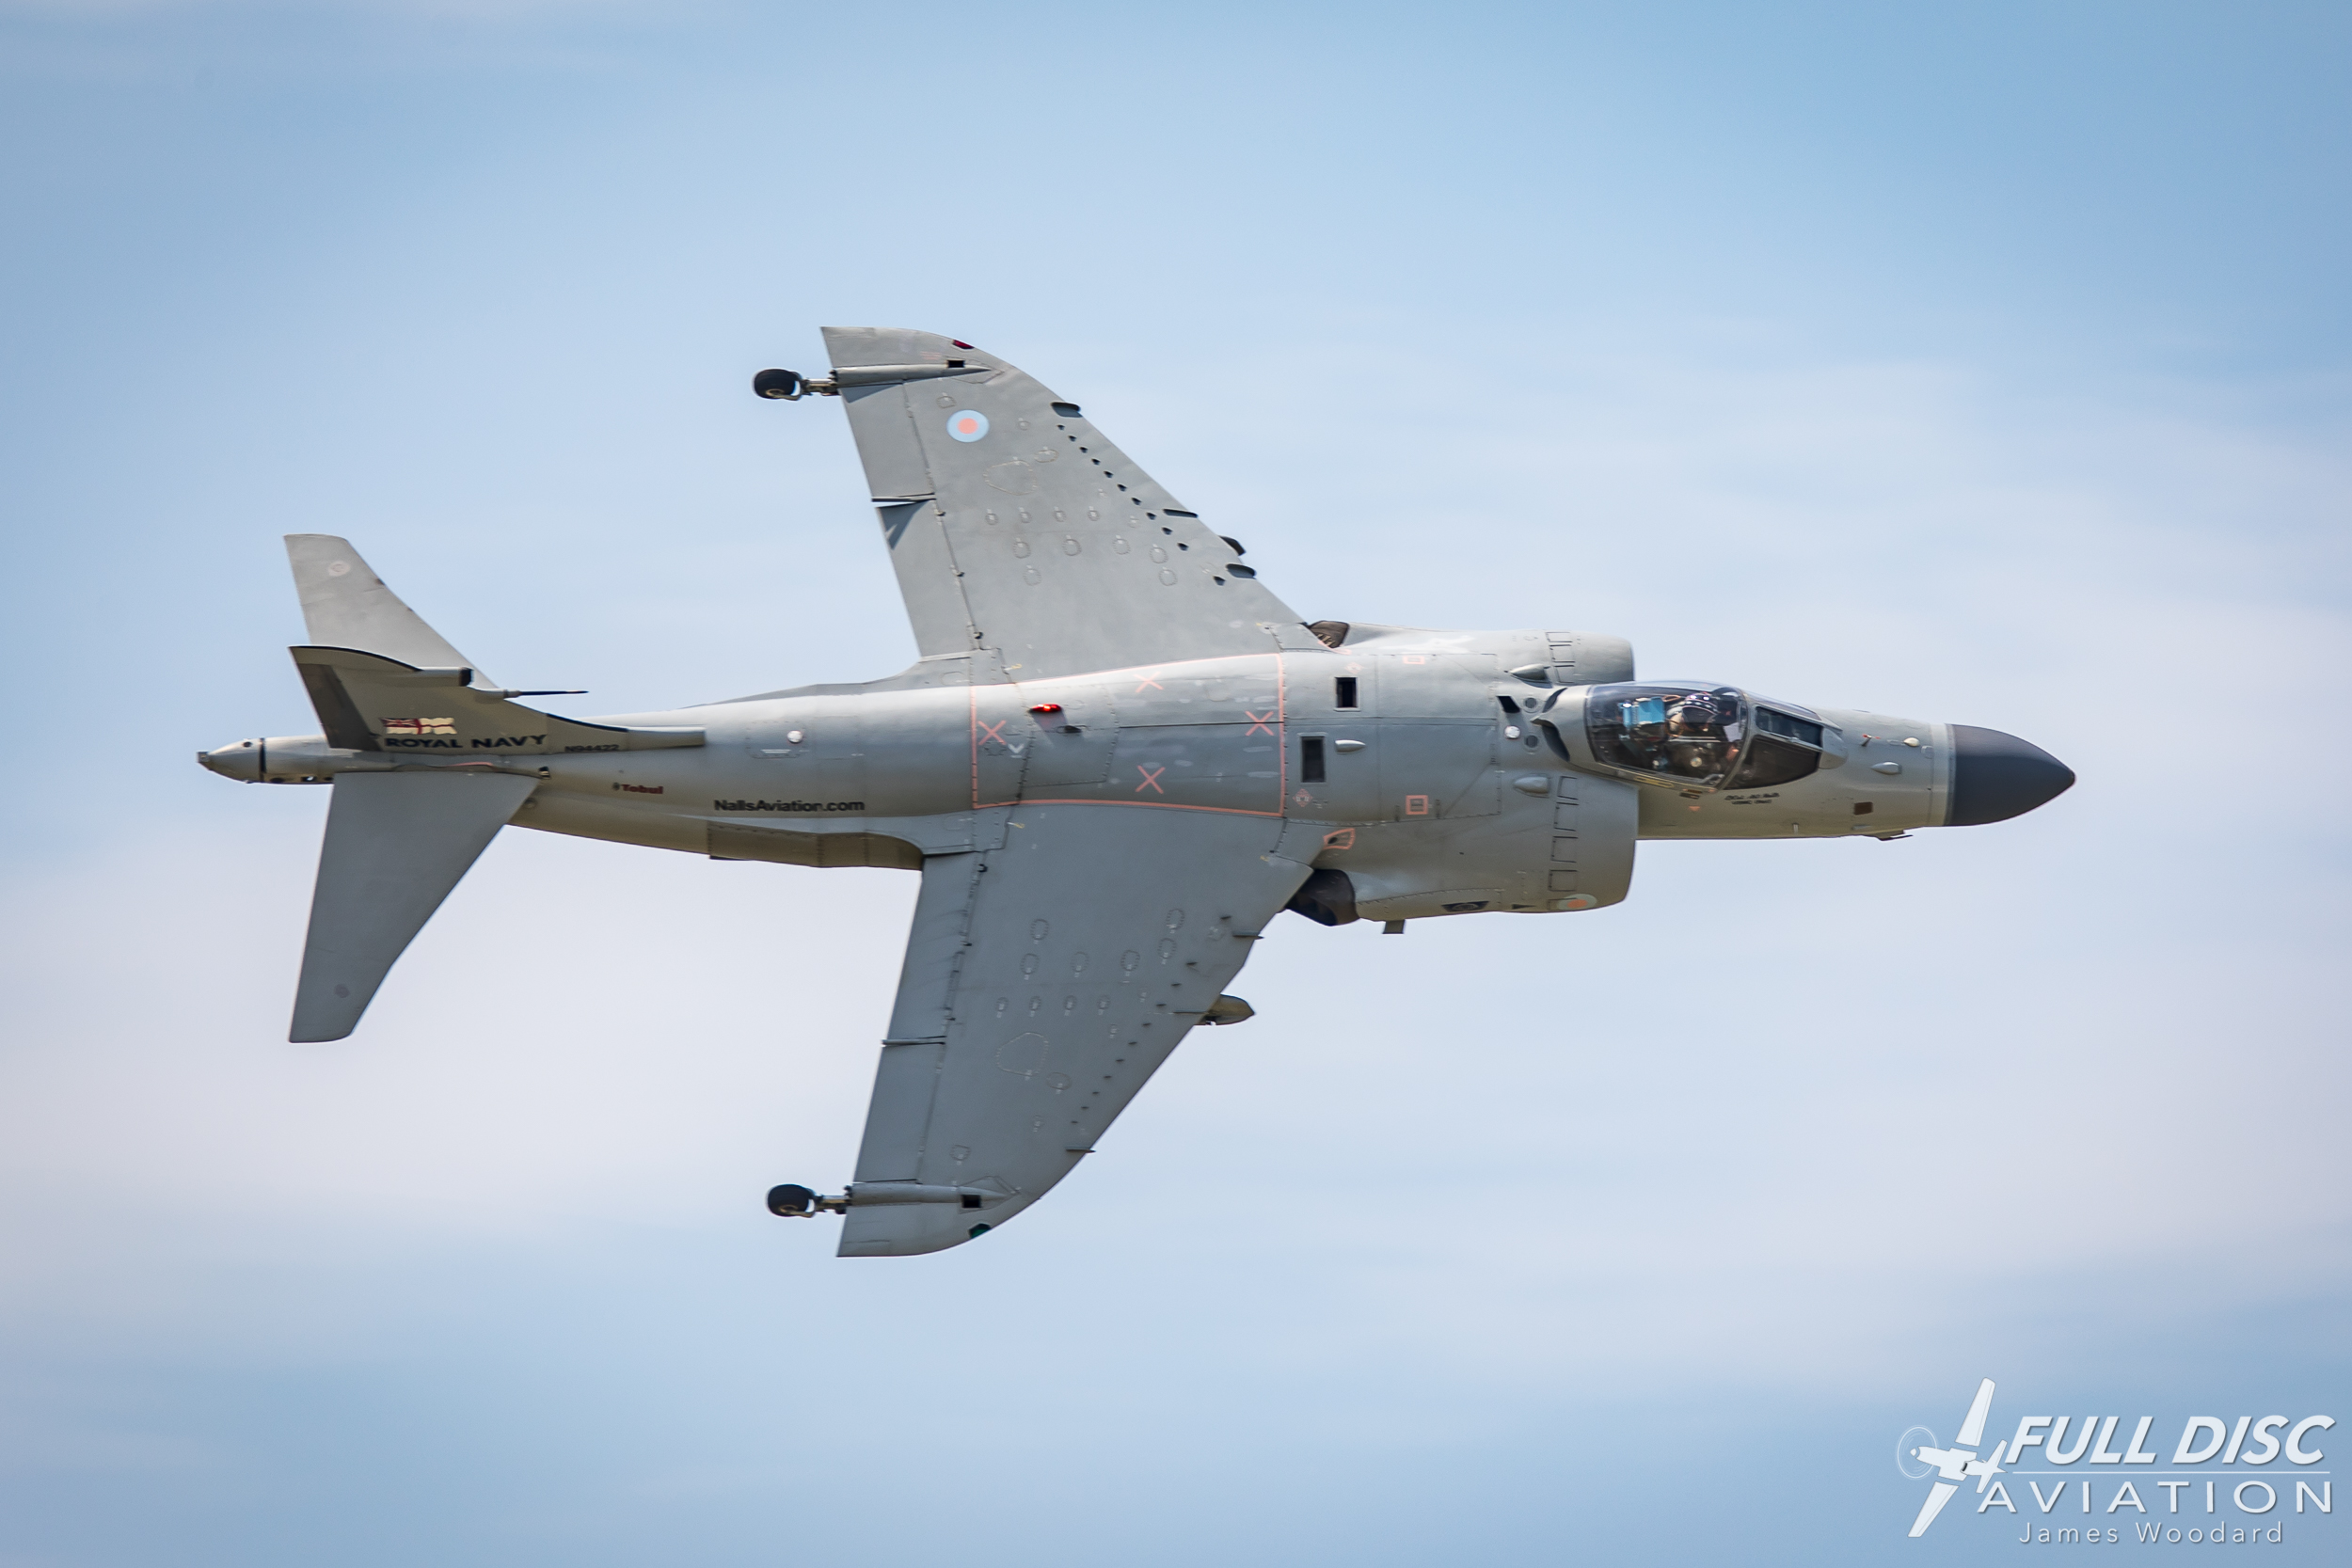 Putting the Sea Harrier to work during the 2018 Manassas Air Show.